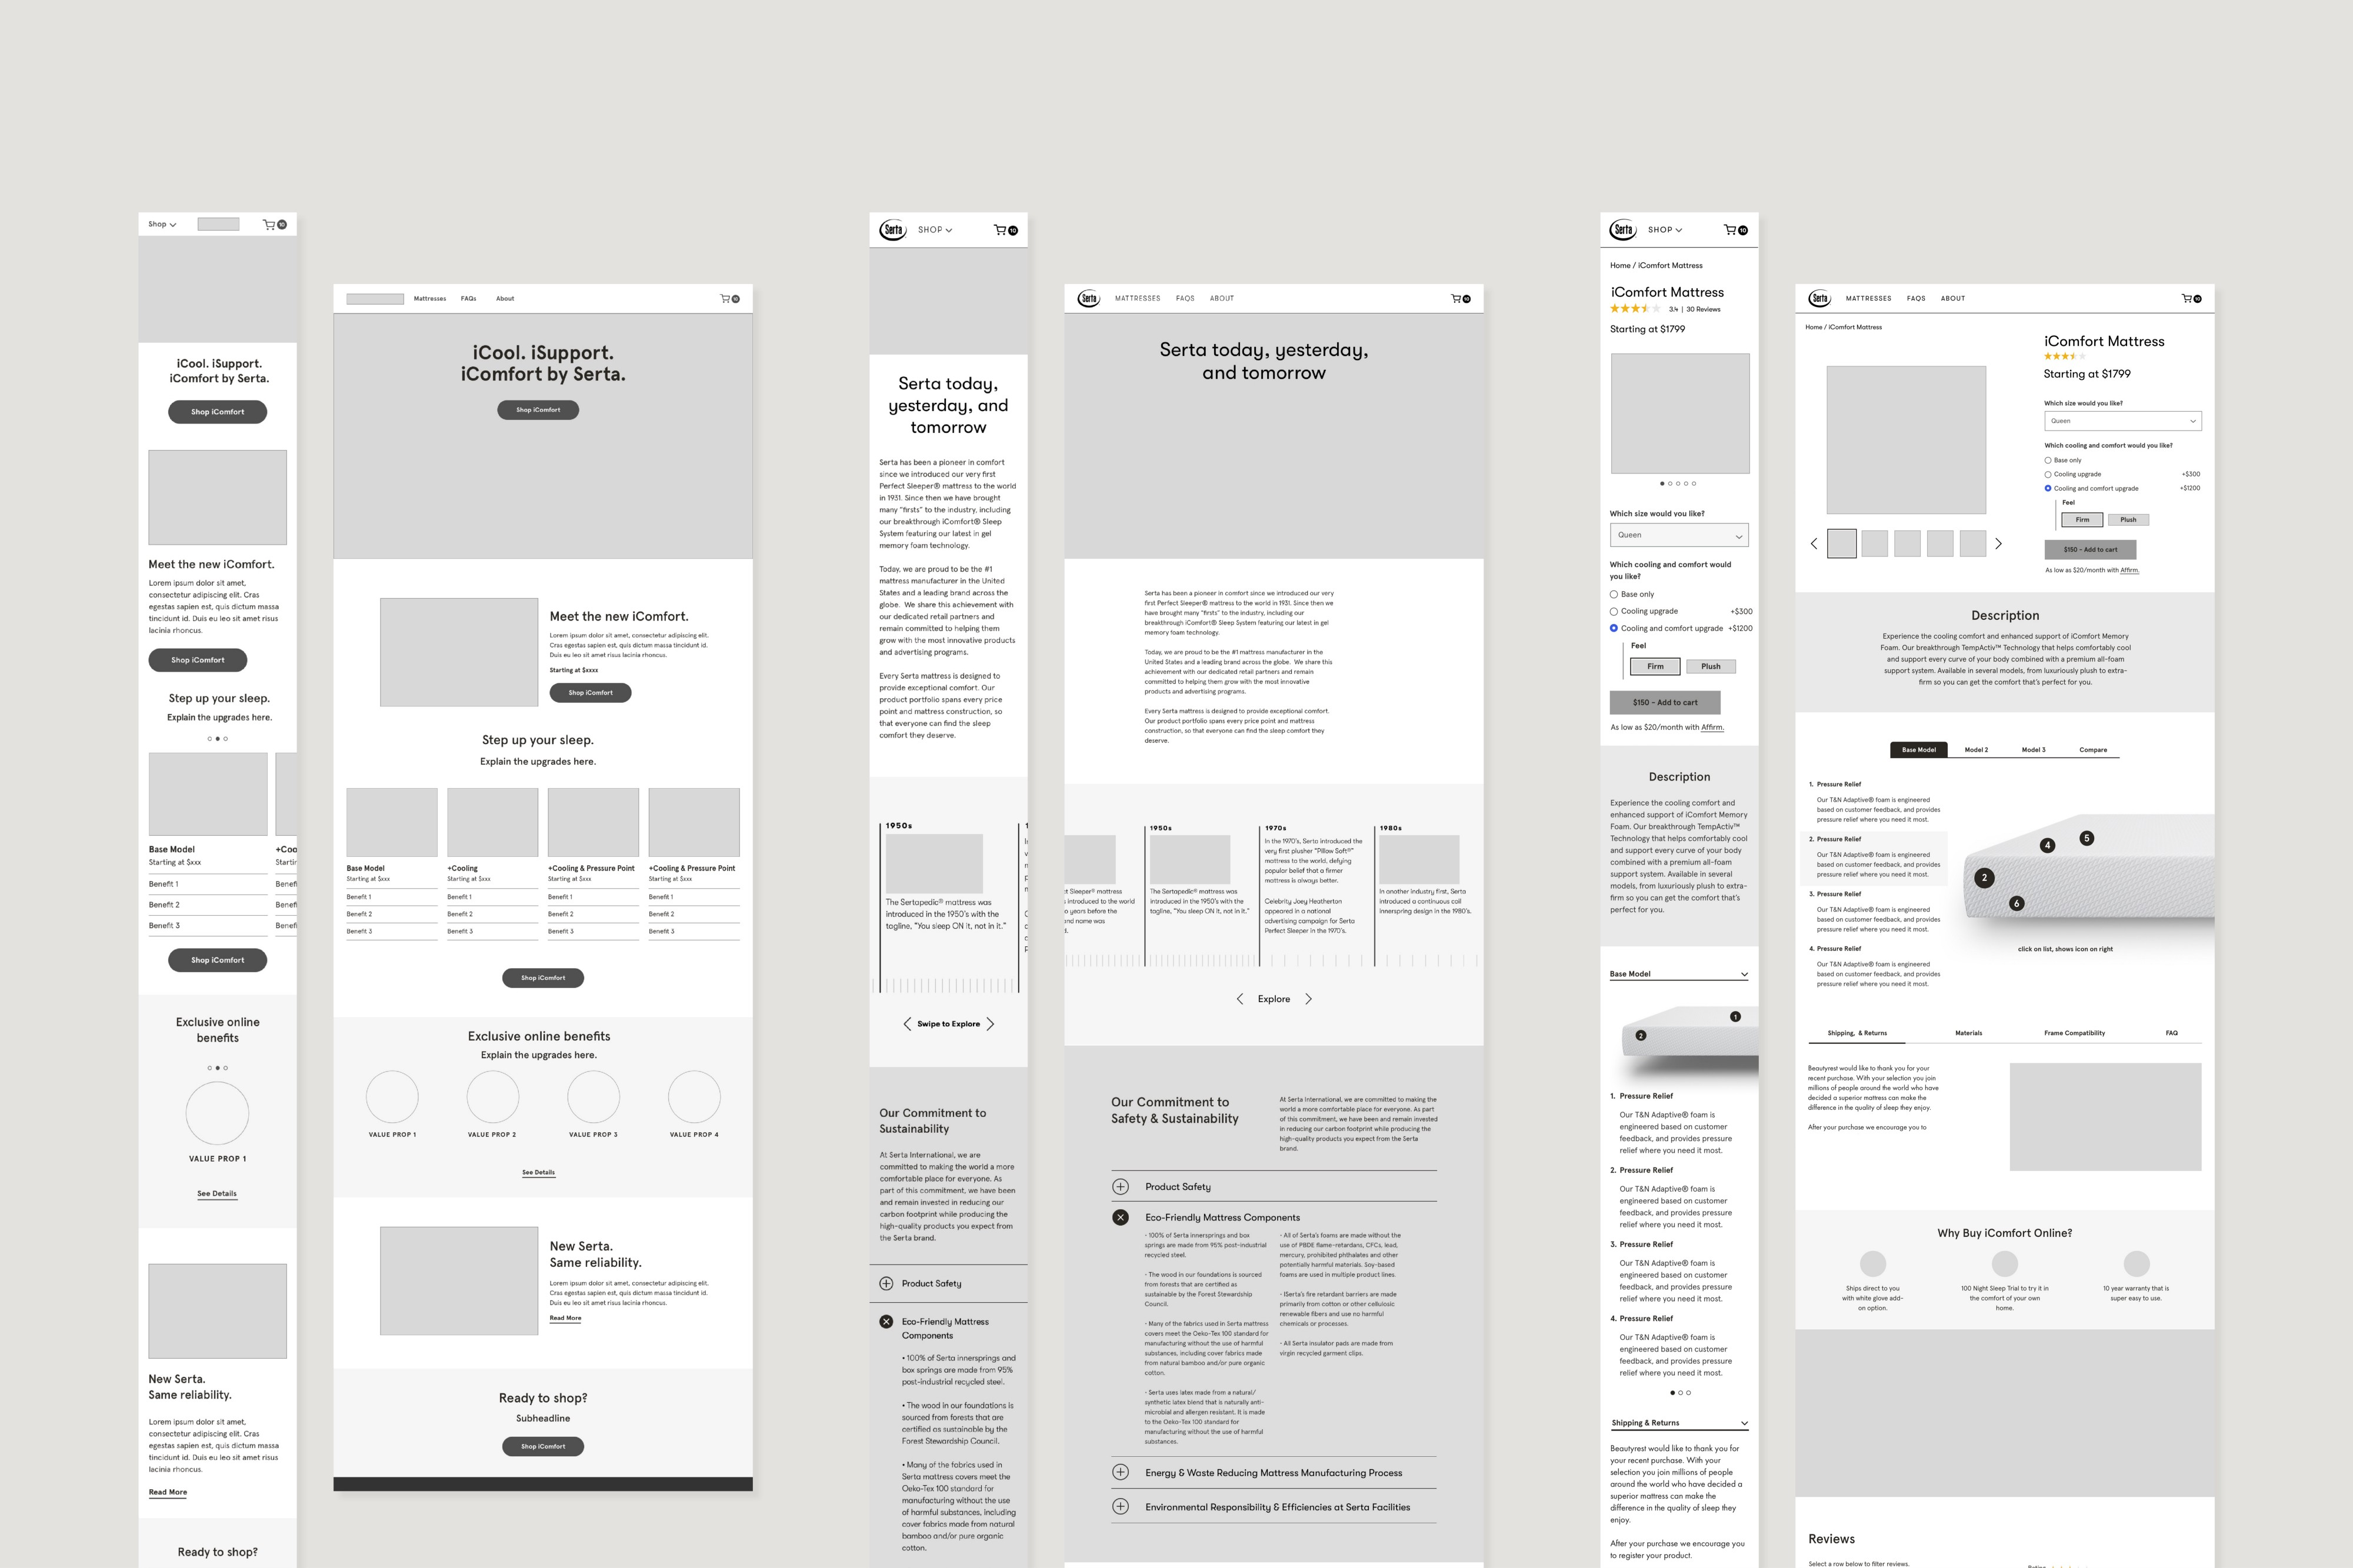 Grayscale mobile & desktop wireframes of the new Homepage, About Page, and Product Detail Page.